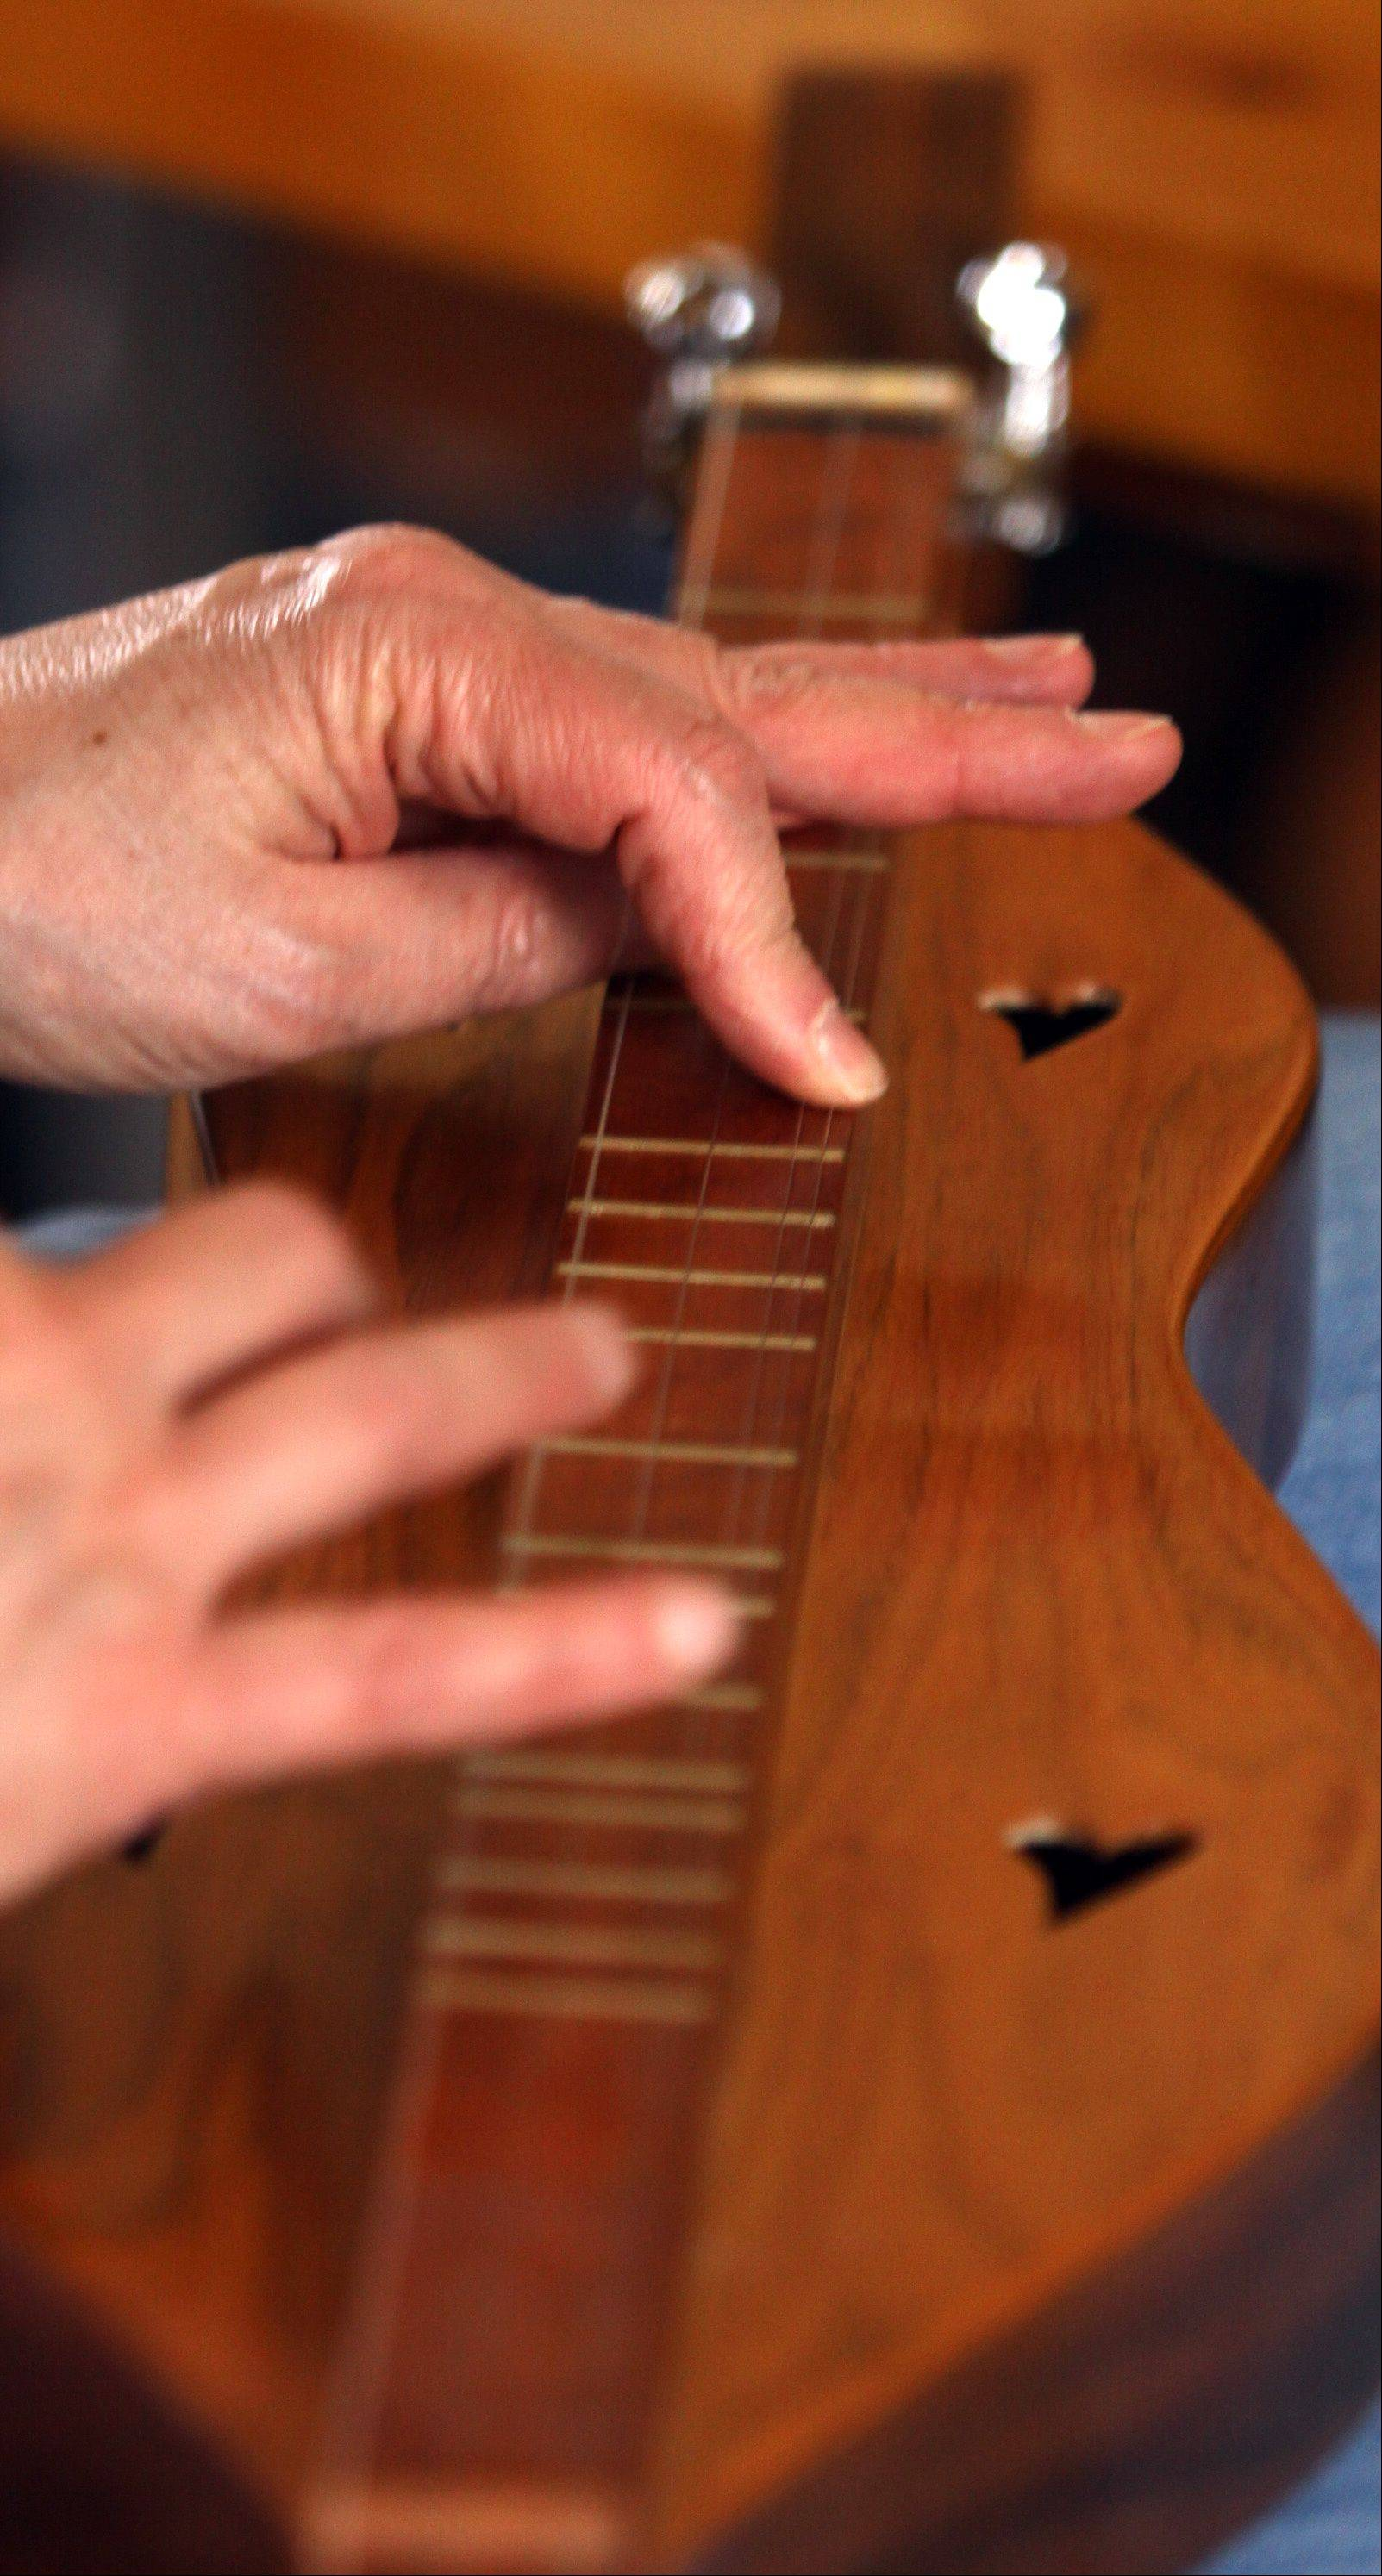 "Dona Benkert of the Folk-Lore Center music school will demonstrate strumming a mountain dulcimer during the ""Hands On Dulcimer Workshop"" at Garfield Farm Museum."